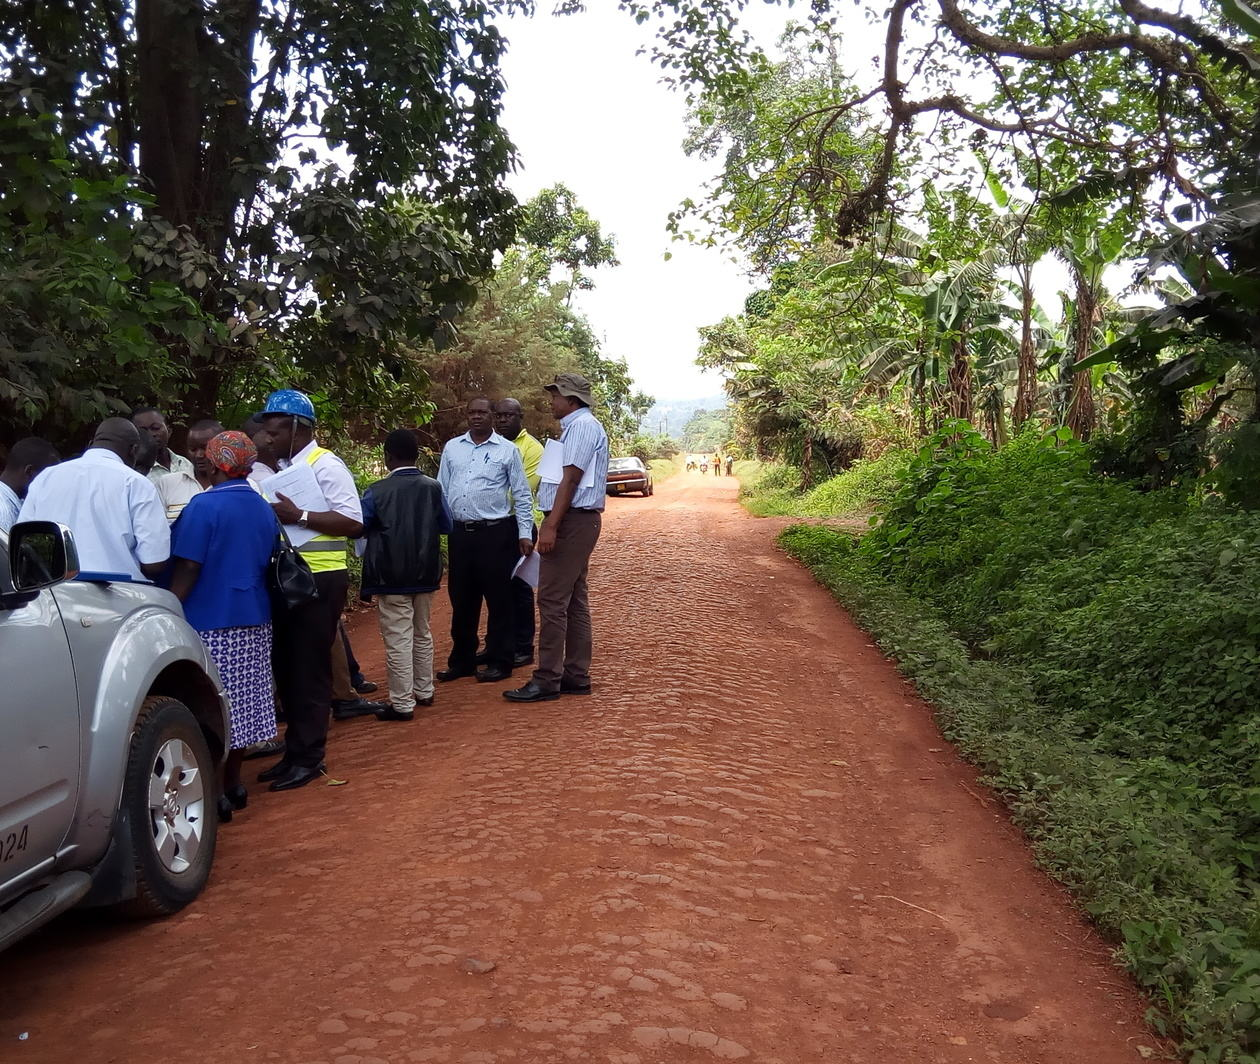 Proficiency Testing Schemes for Materials Testing on Rural Roads